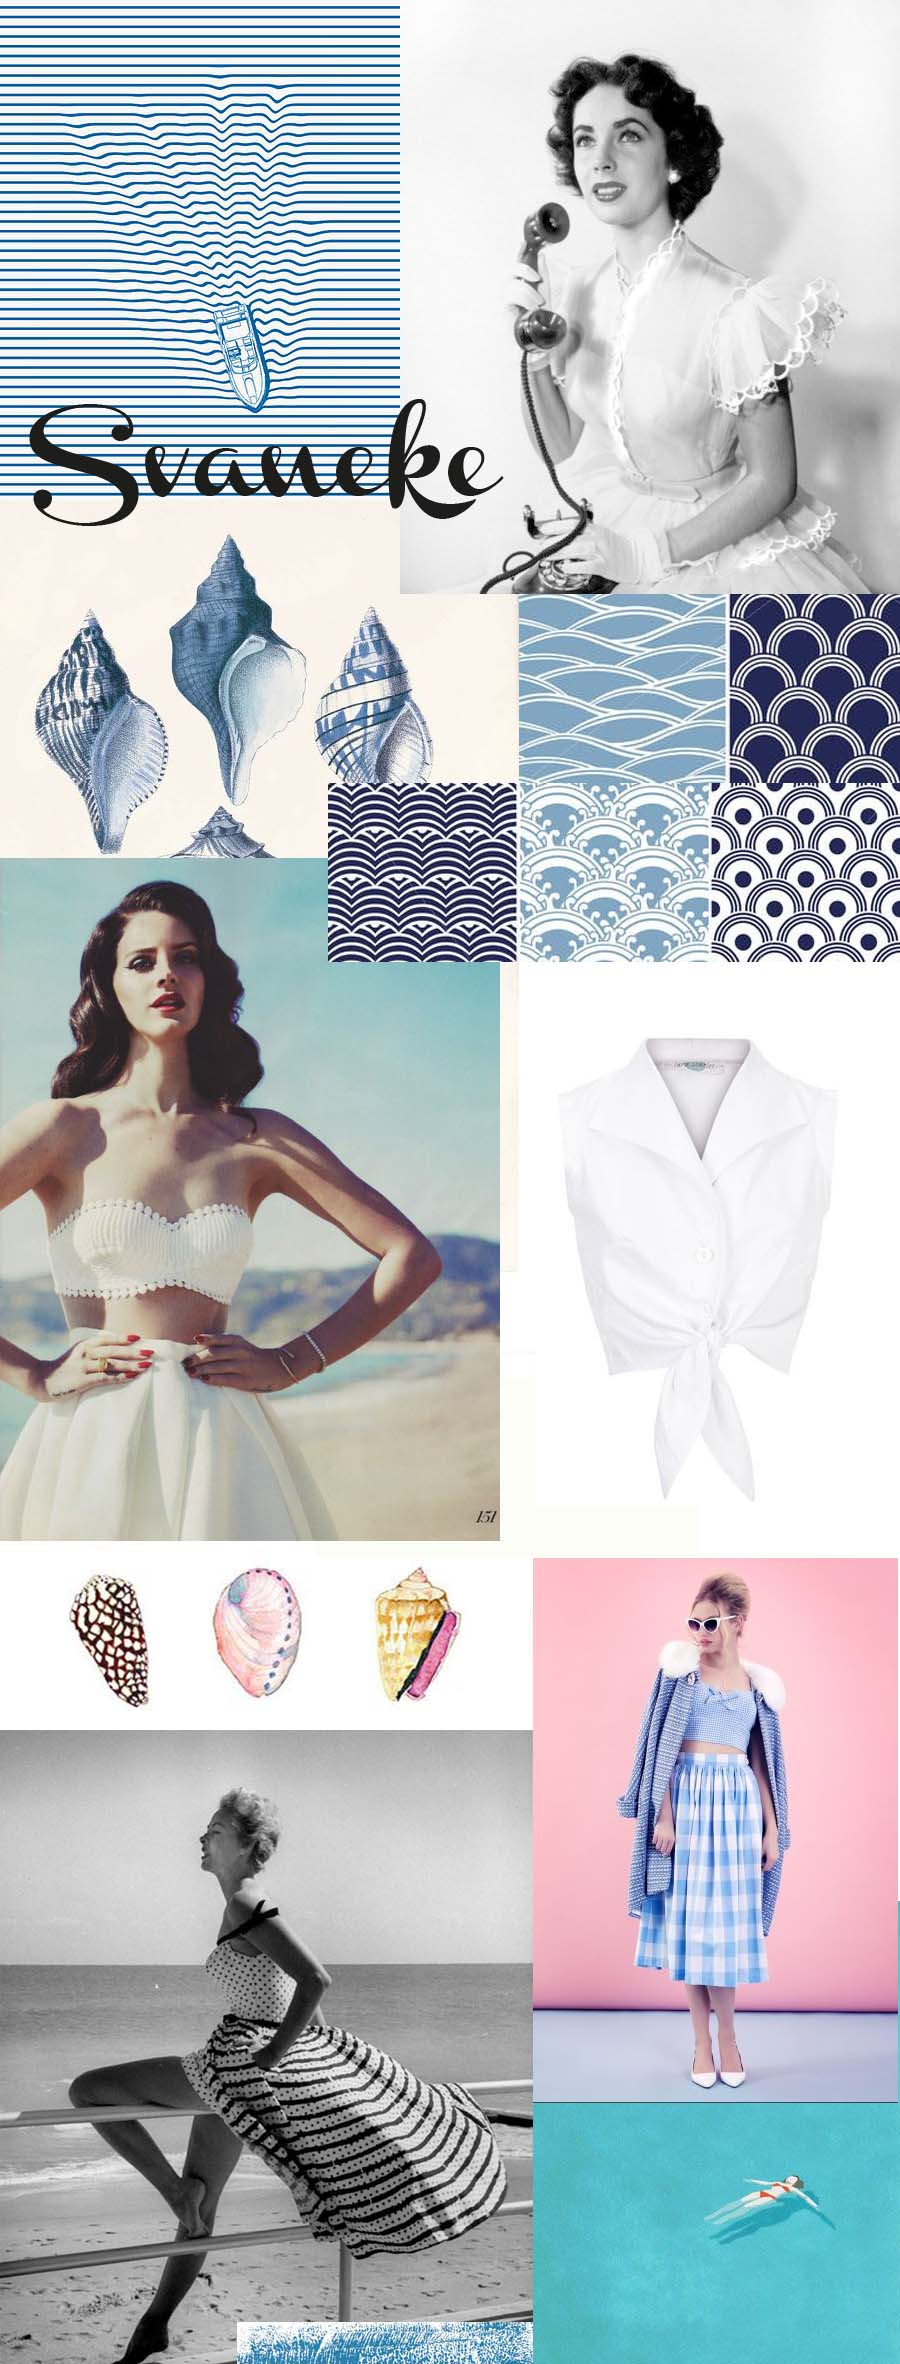 howtodofashion_moodboard_stormsmagasin